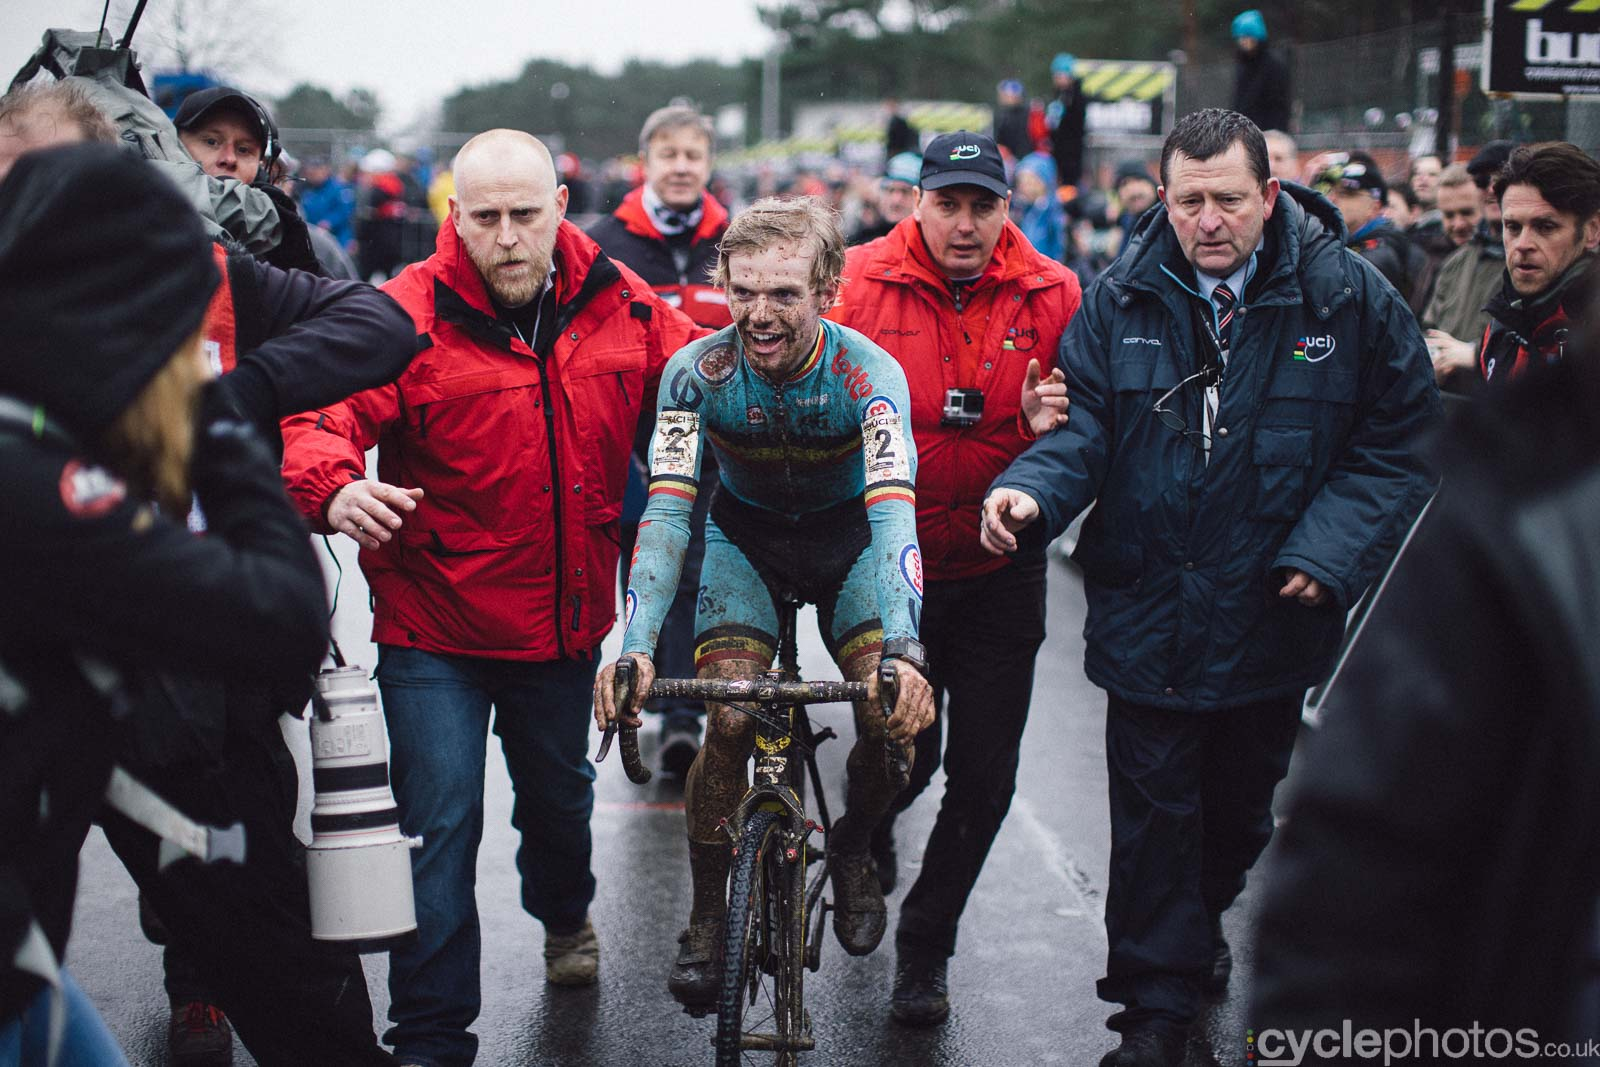 2016-cyclephotos-cyclocross-world-championships-zolder-115206-eli-iserbyt